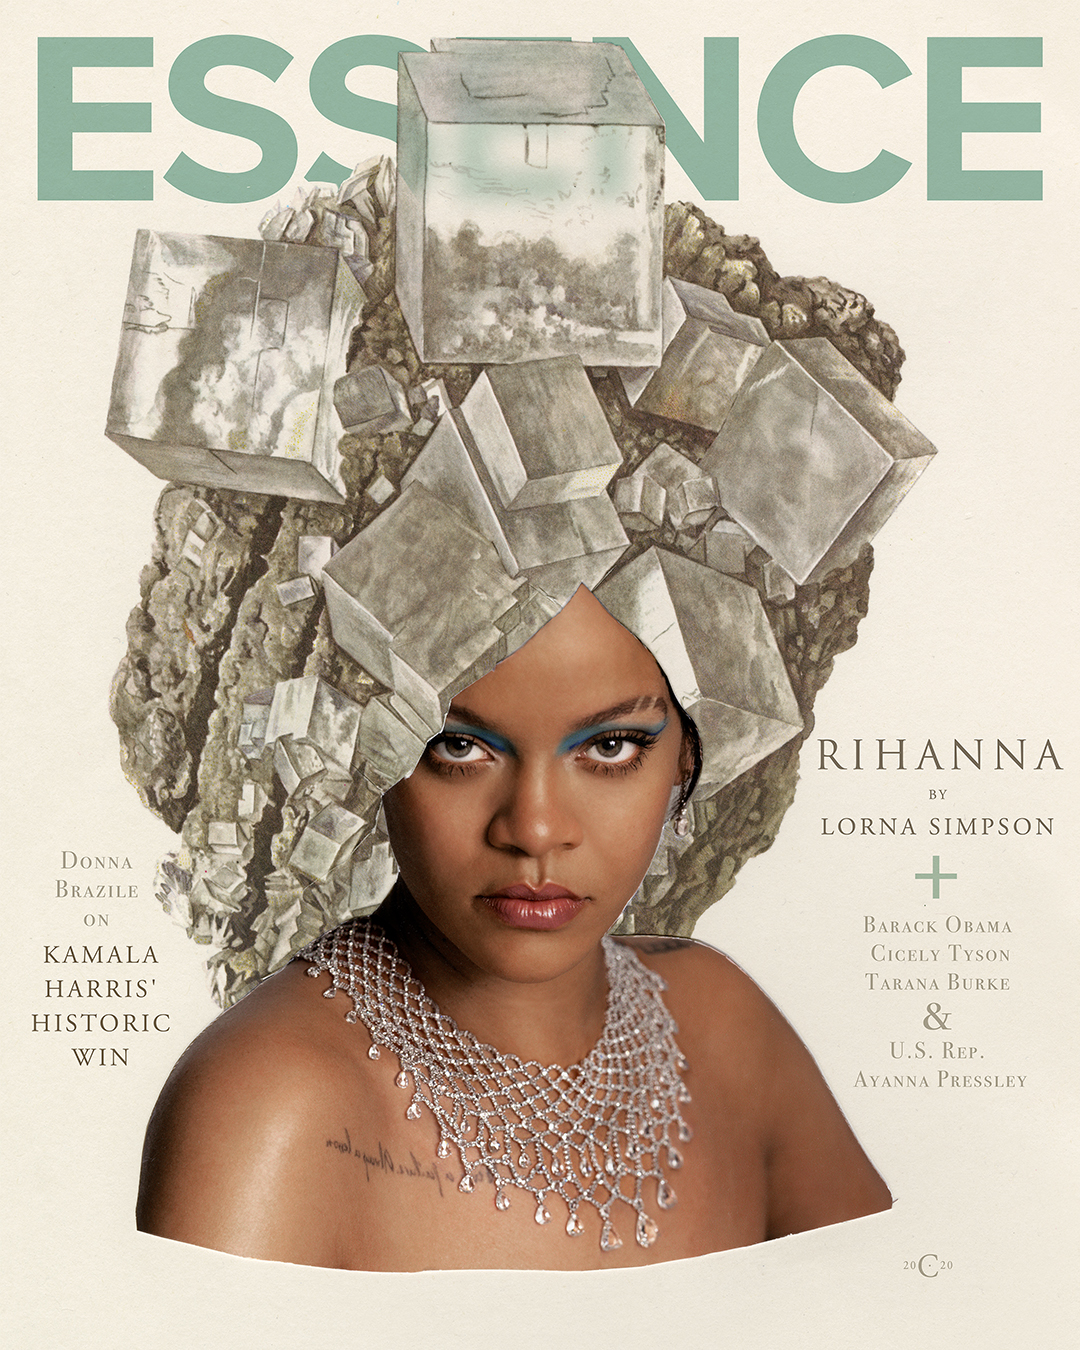 To Photograph Rihanna for 'Essence' Magazine, Artist Lorna Simpson Drew Inspiration From Her Own Archives—See Images Here